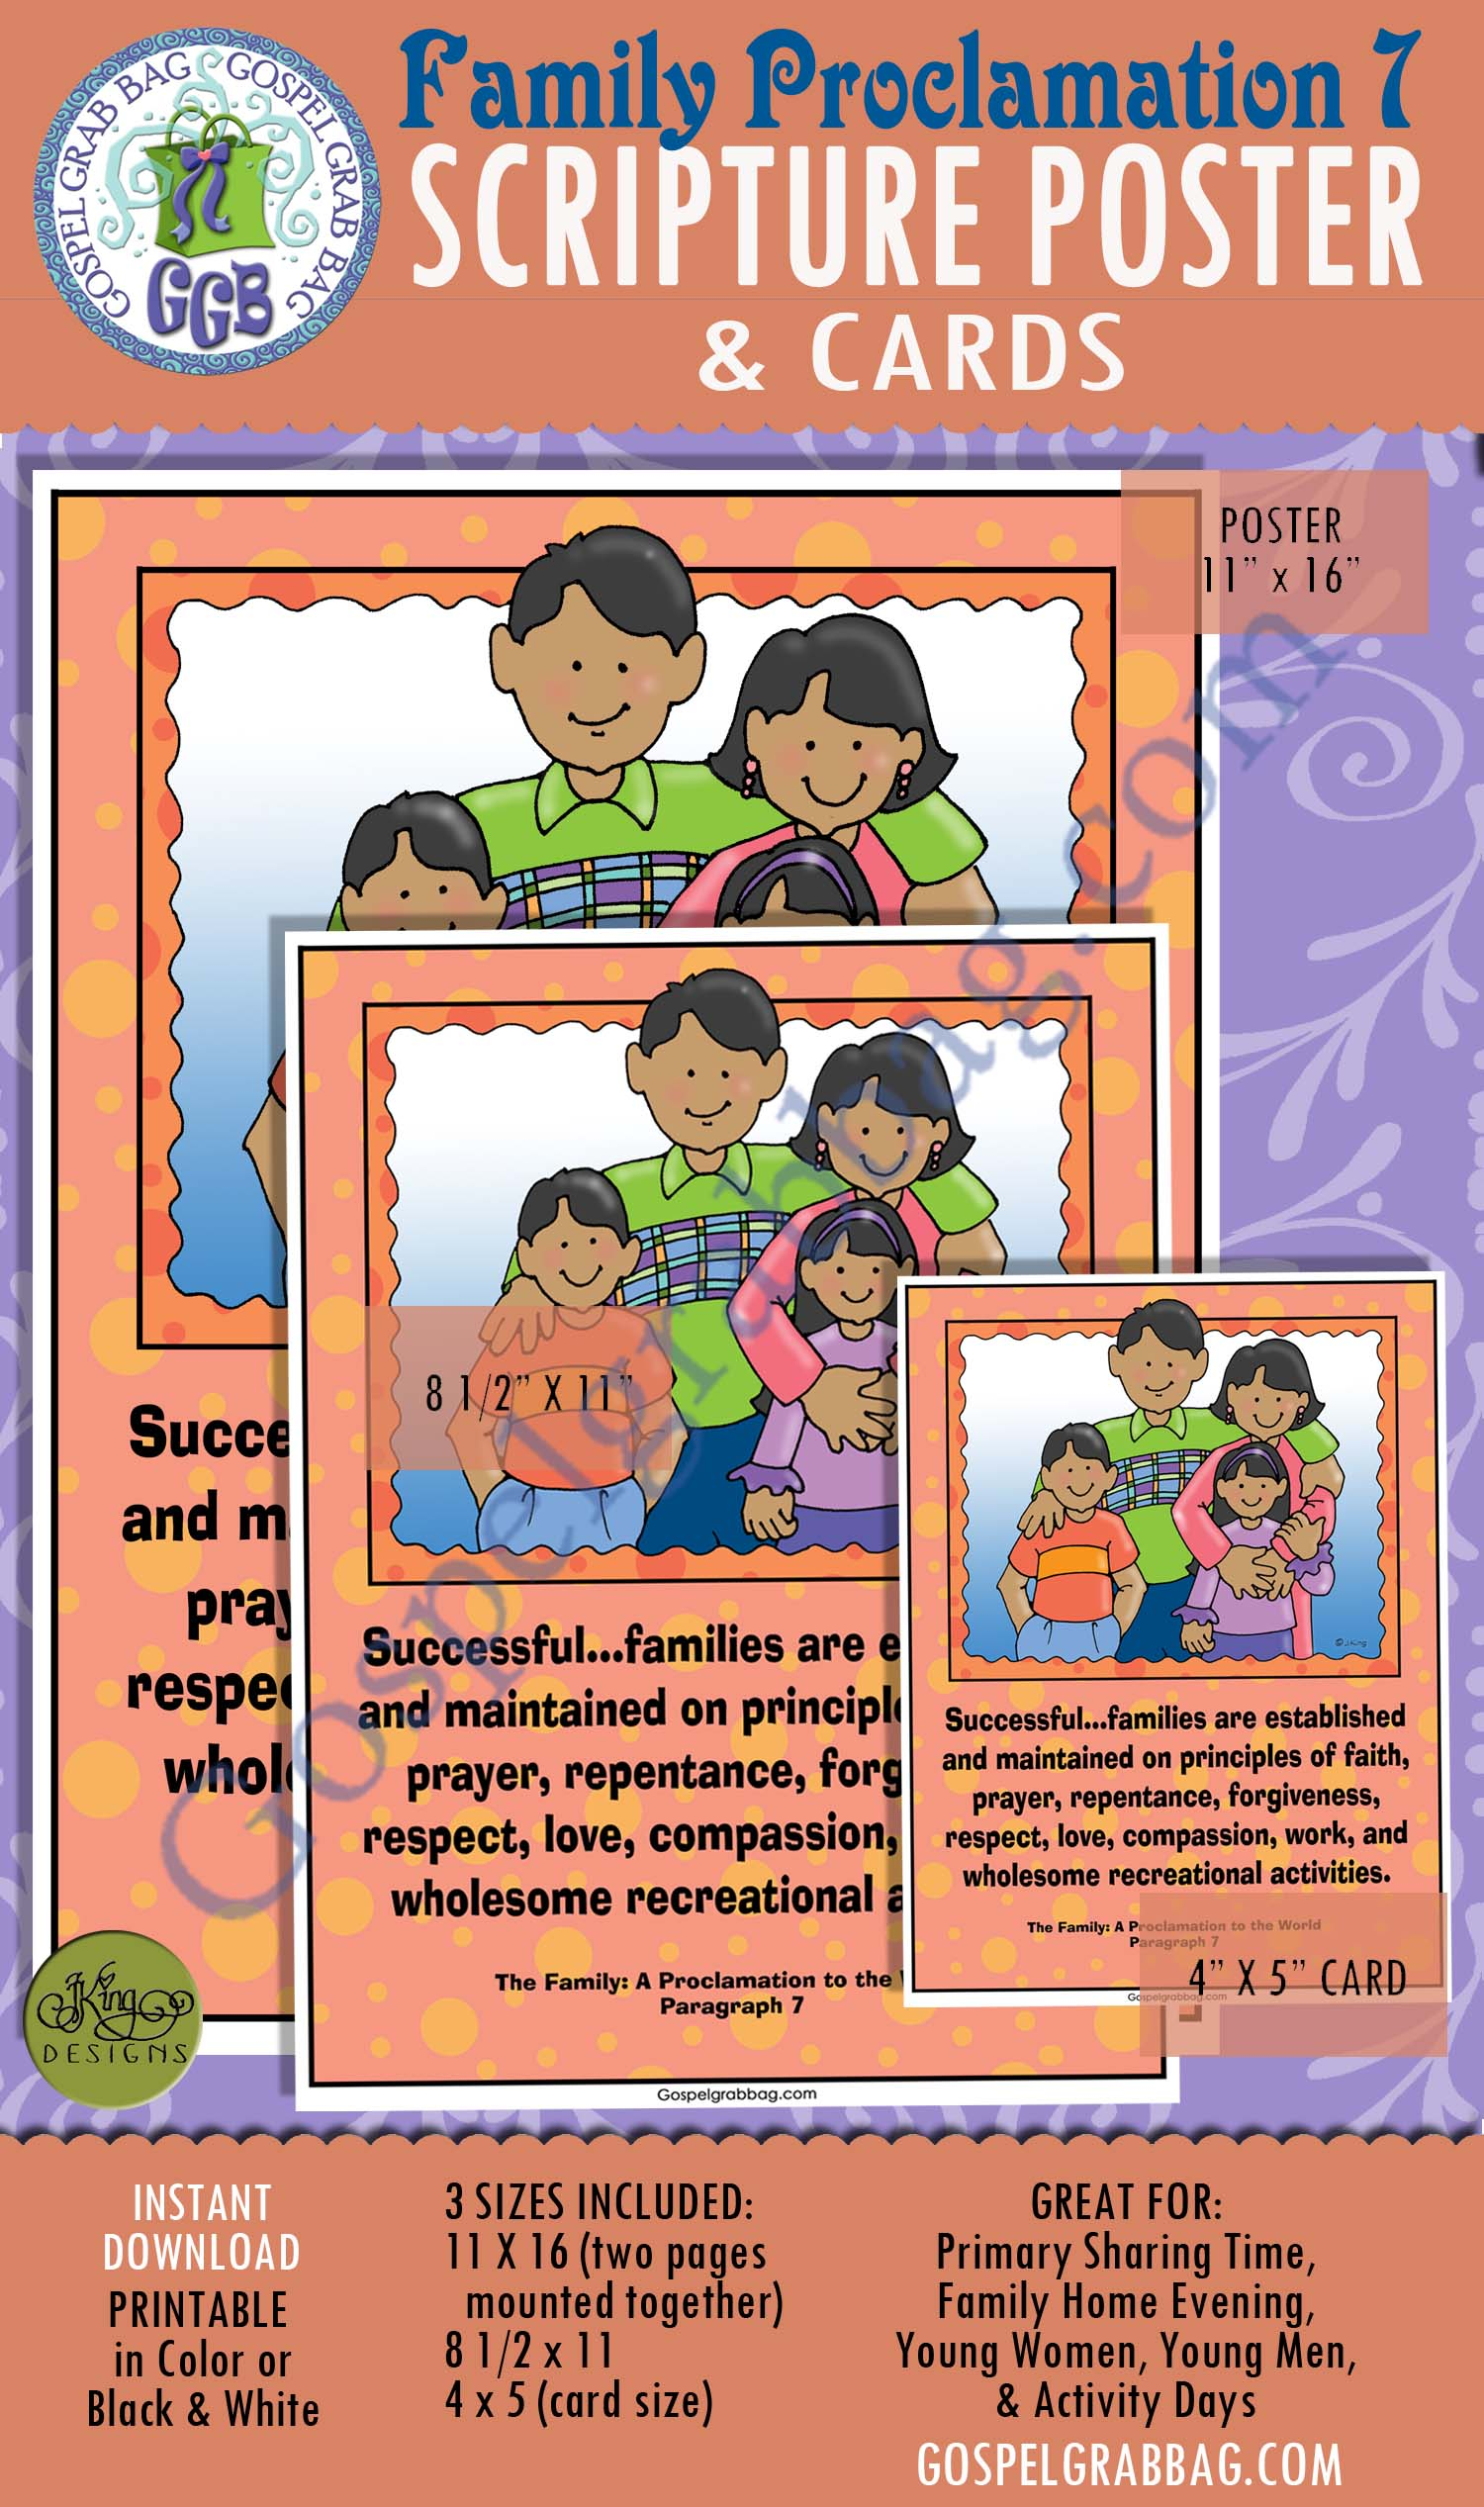 $2.00 SCRIPTURE POSTERS & CARDS: The Family: A Proclamation to the World 7, GospelGrabBag.com